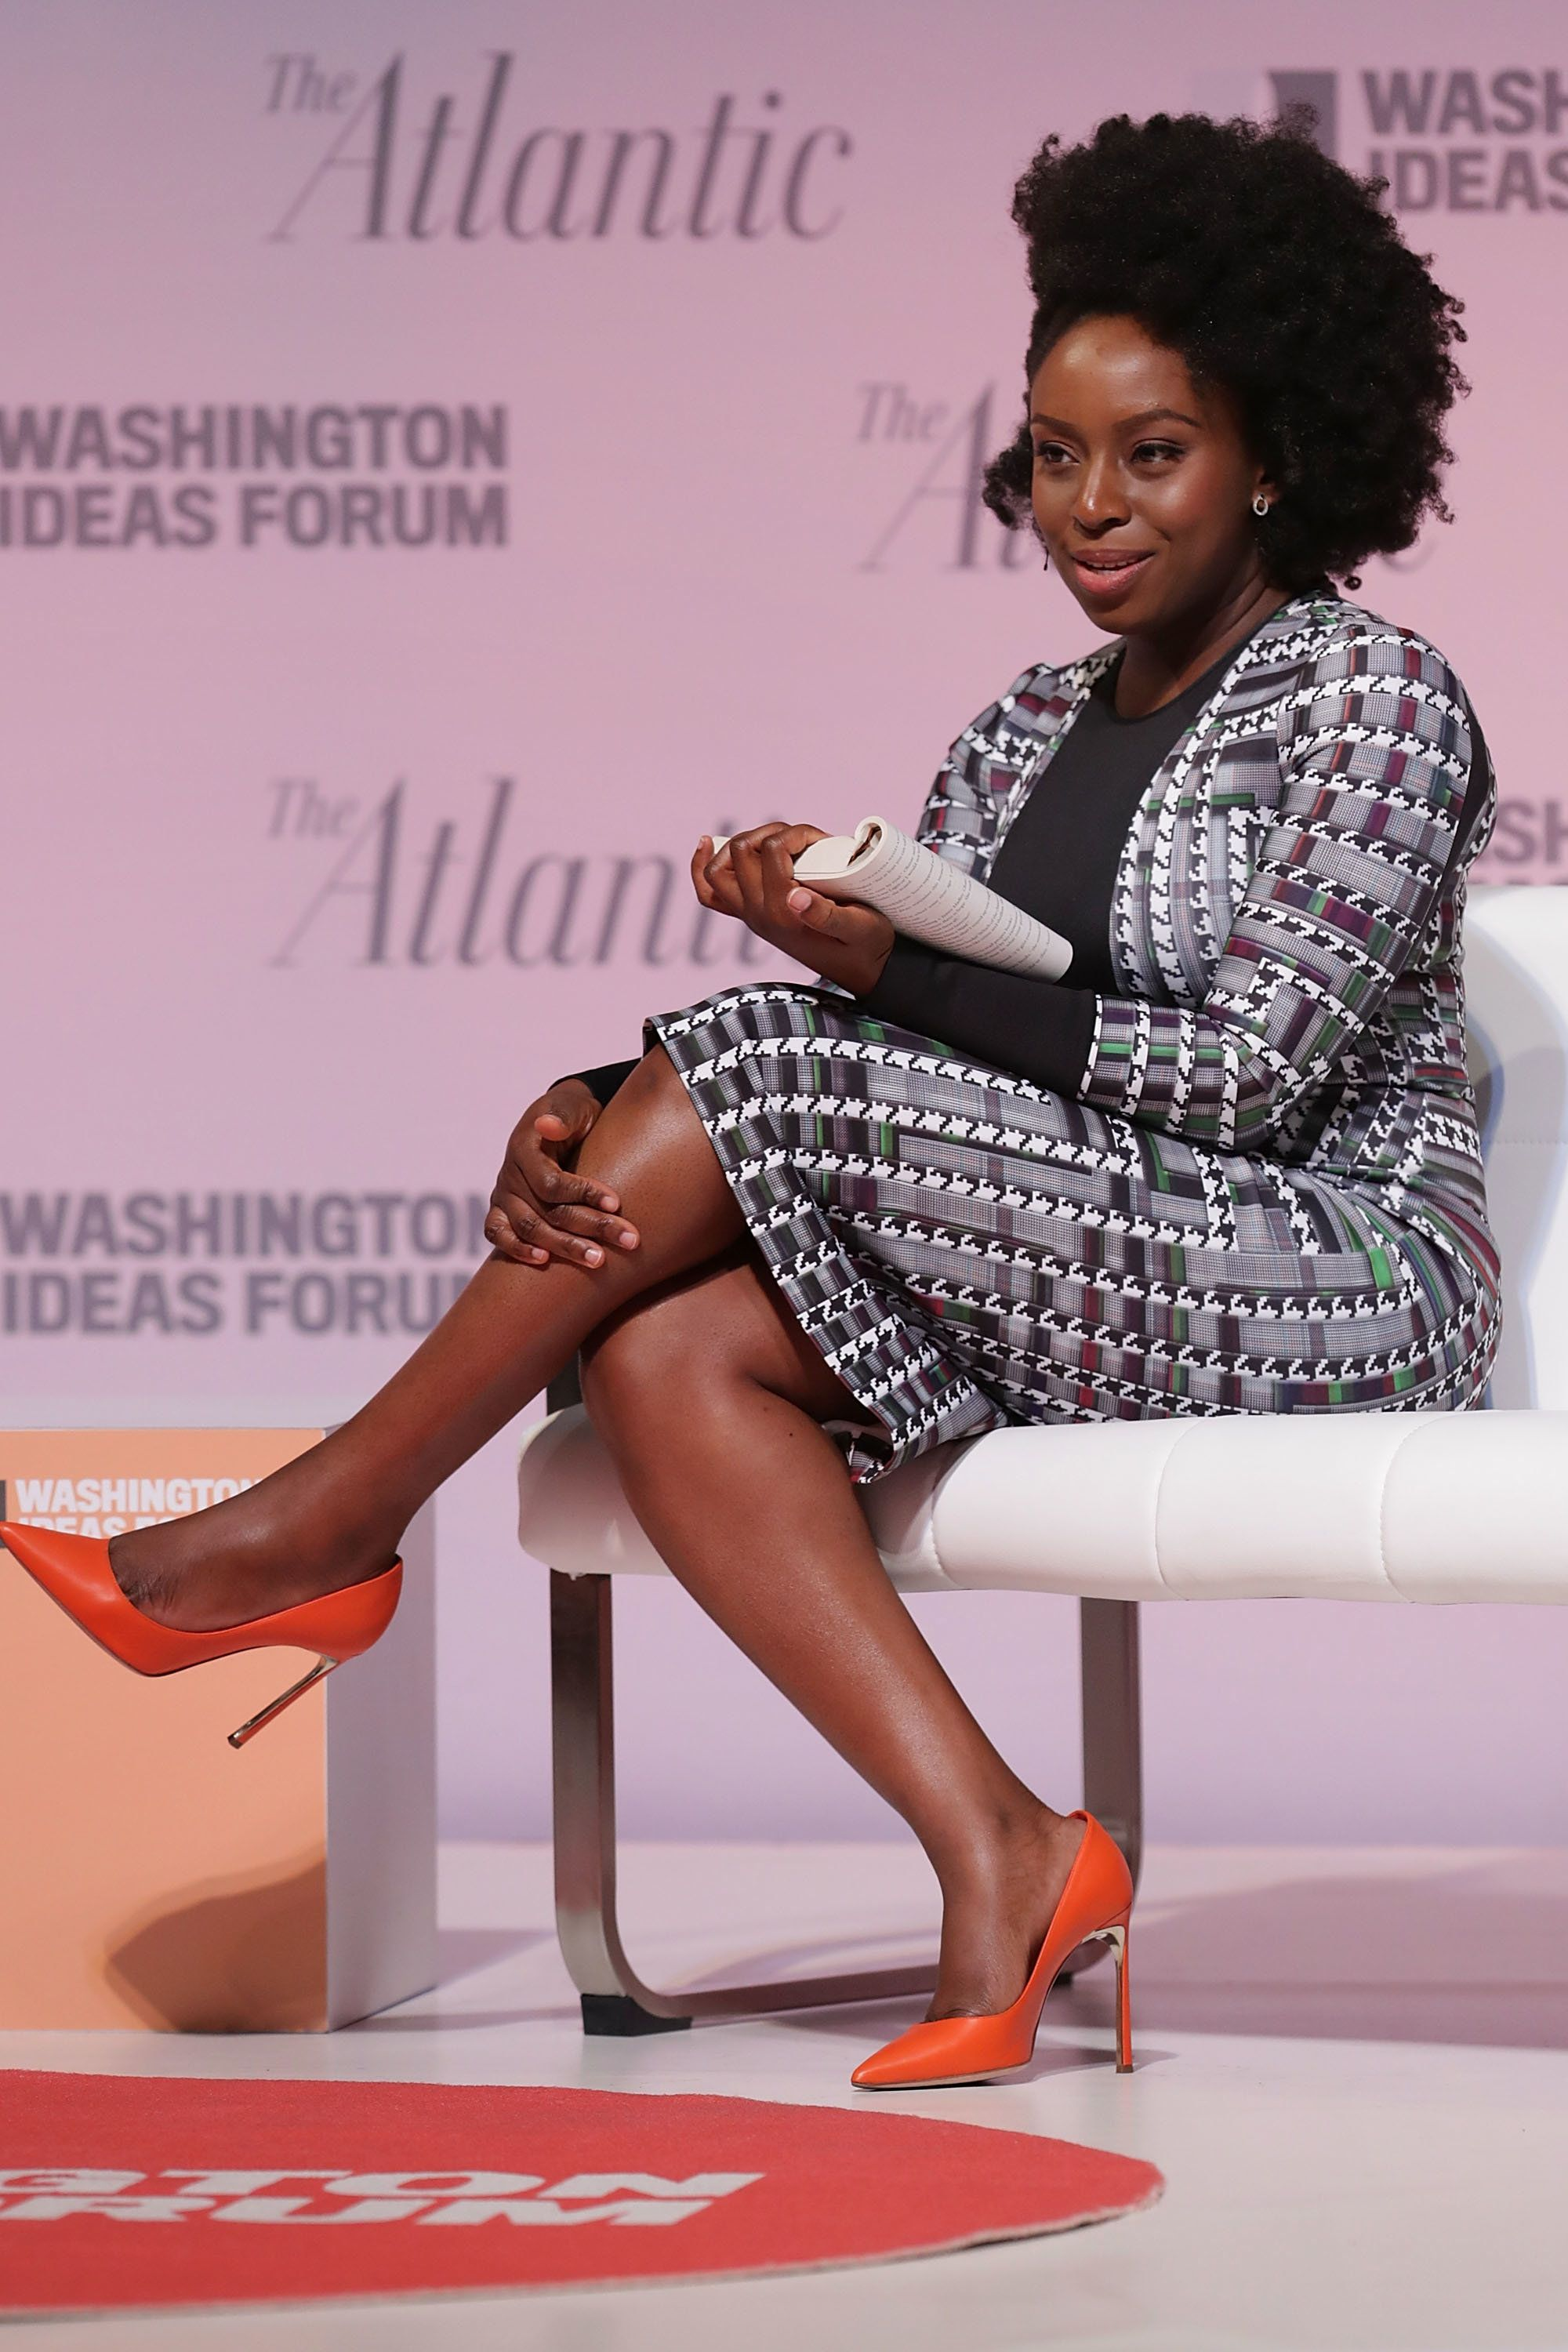 WASHINGTON, DC - SEPTEMBER 28:  Author Chimamanda Ngozi Adichie reads from one of her novels during the Washington Ideas Forum at the Harman Center for the Arts September 28, 2016 in Washington, DC. Adichie said she would have a very difficult time writing about racism and the recent shootings of unarmed black men in America, saying, 'I almost feel that language has failed me.'  (Photo by Chip Somodevilla/Getty Images)